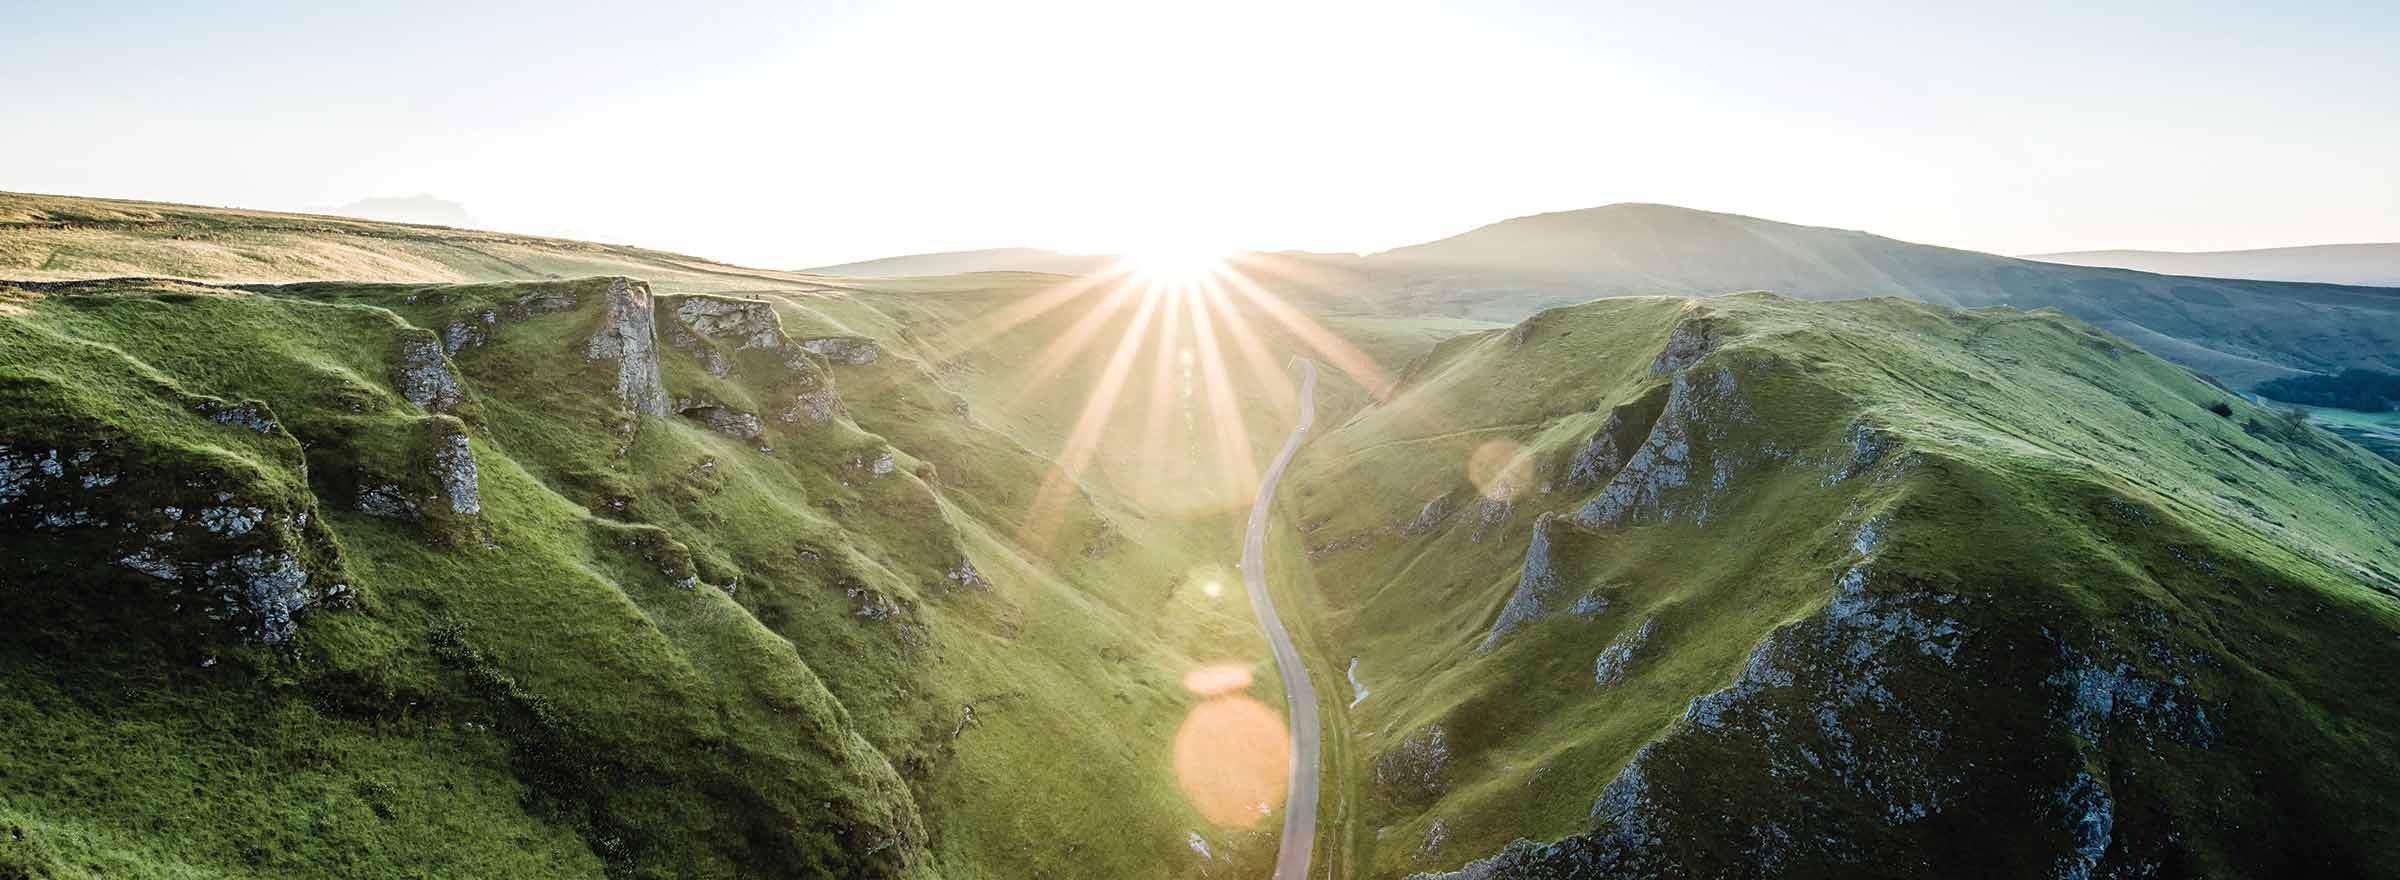 sunlight shining on a road that leads between grassy hillsides, representing the benefits to the environment of the TechSoup Refurbished Hardware Program